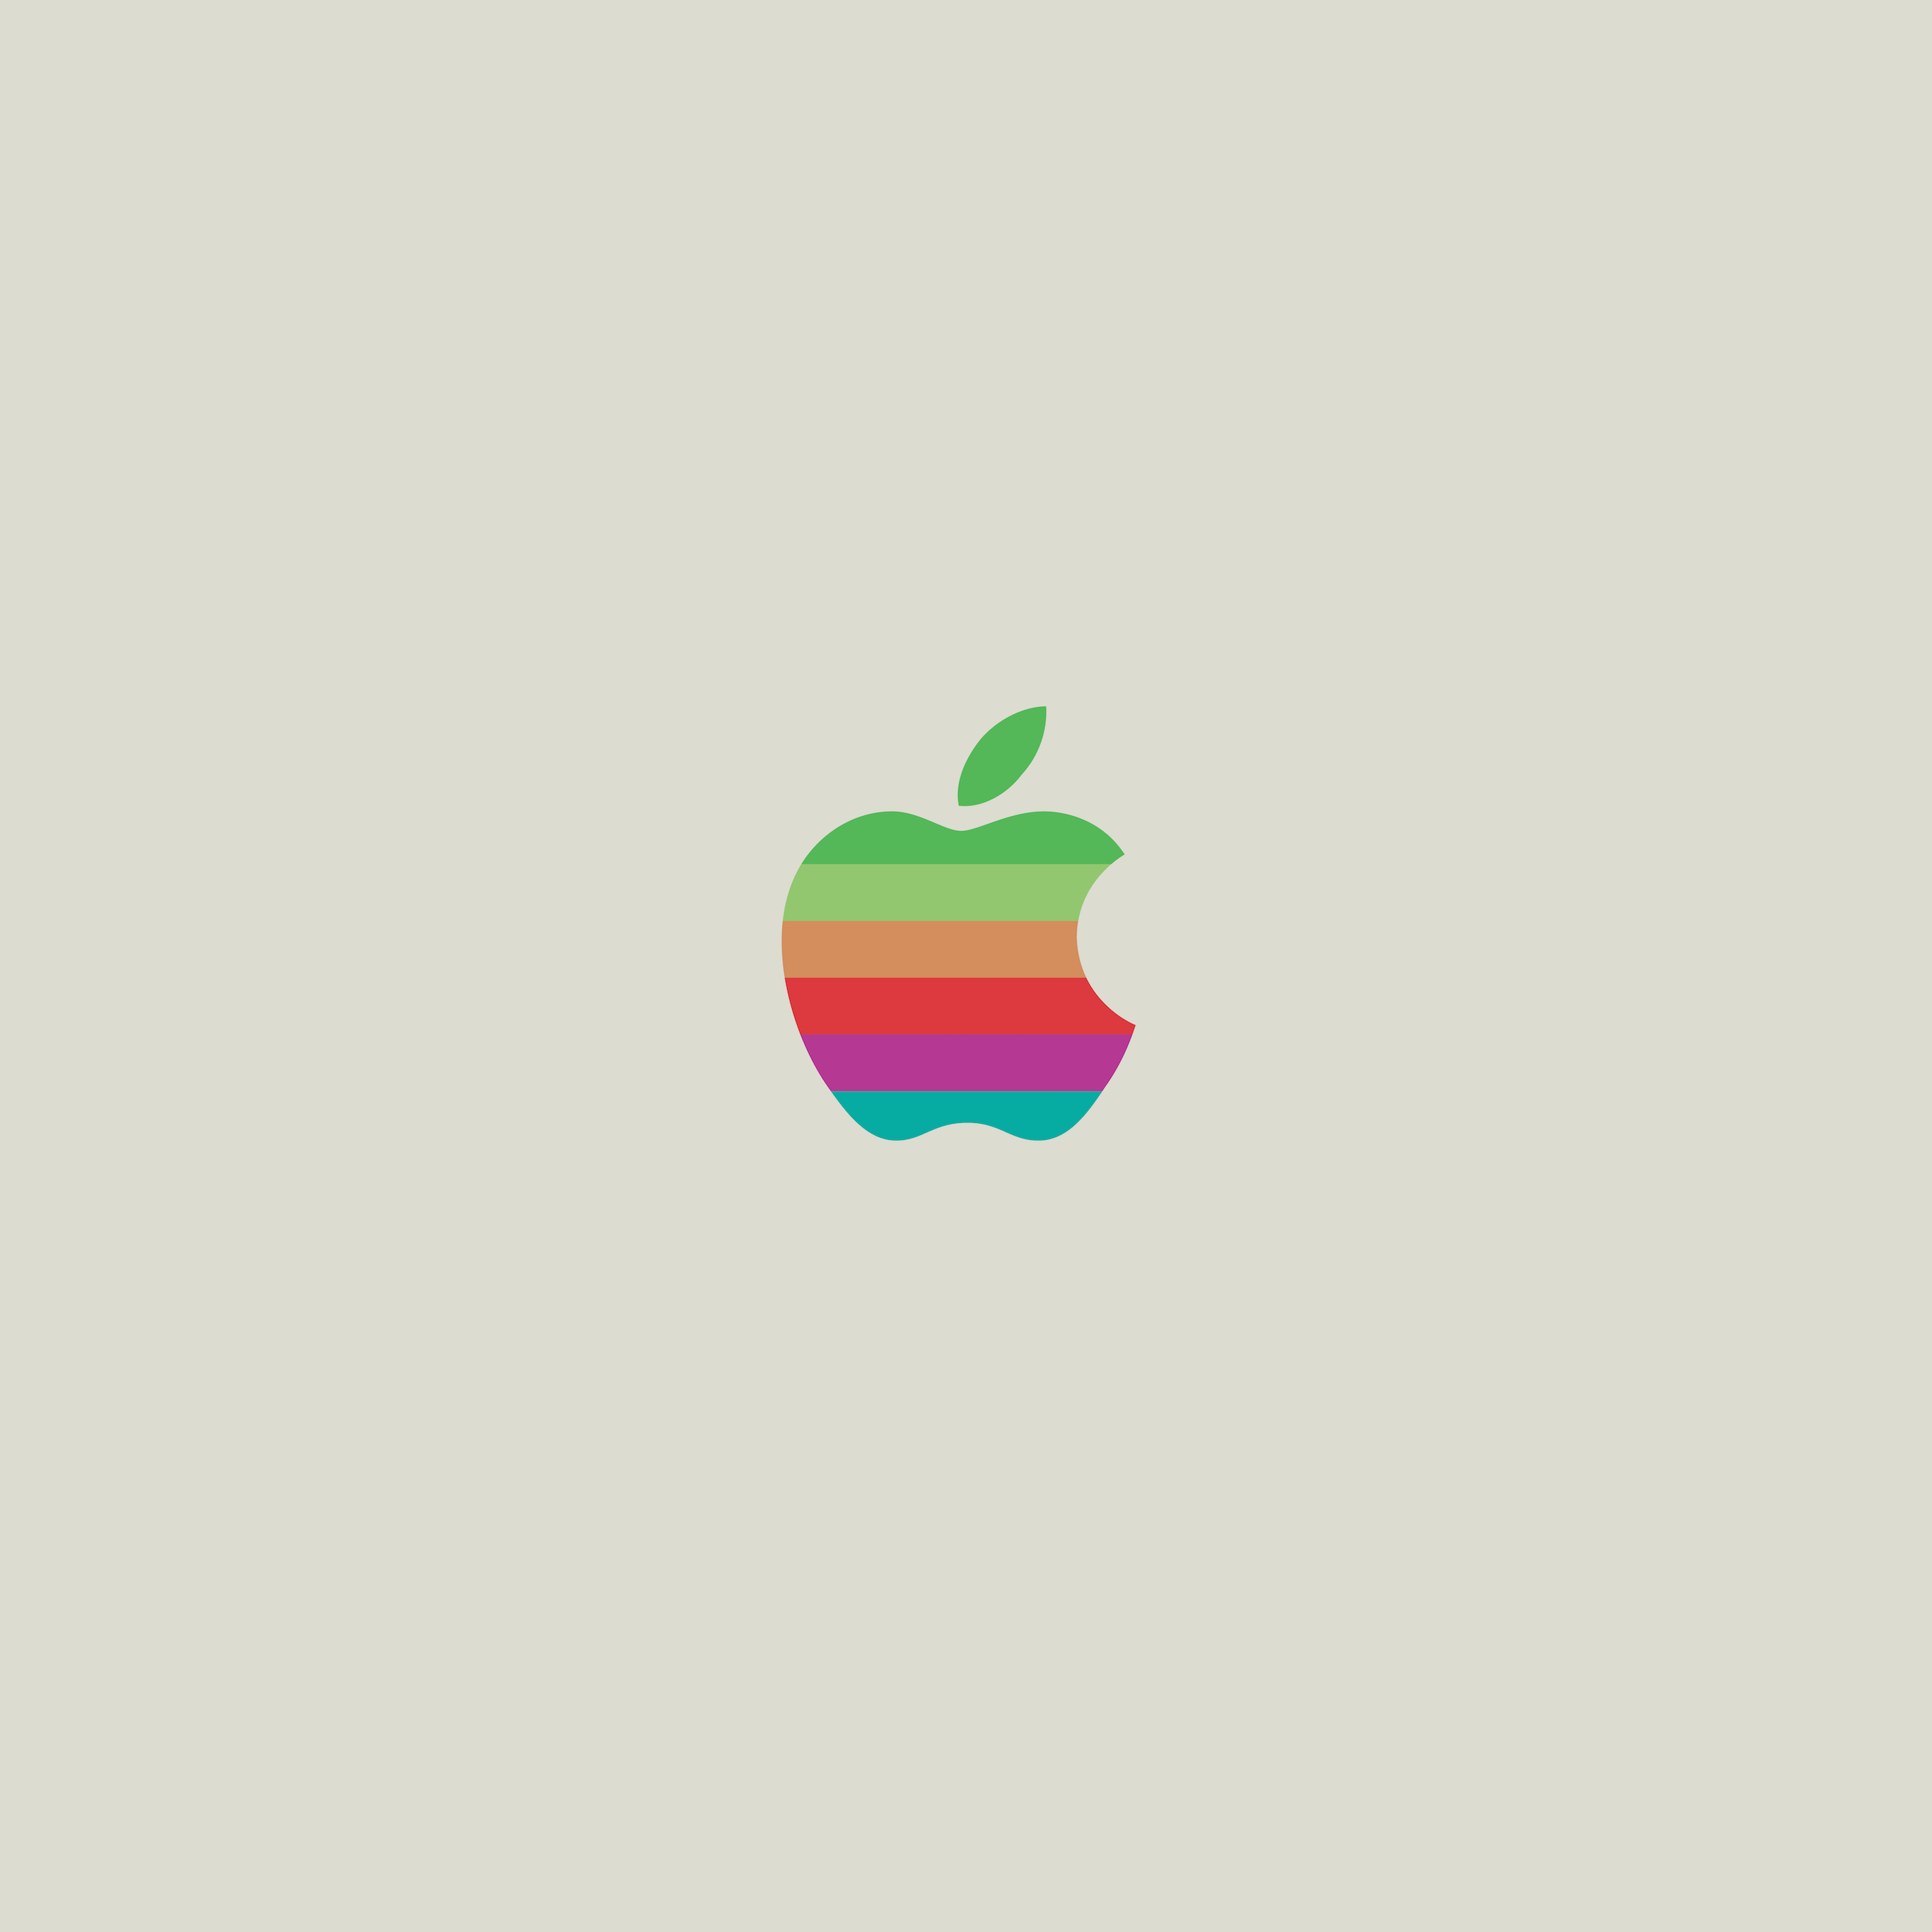 Rainbow Apple Logo Iphone Wallpapers Top Free Rainbow Apple Logo